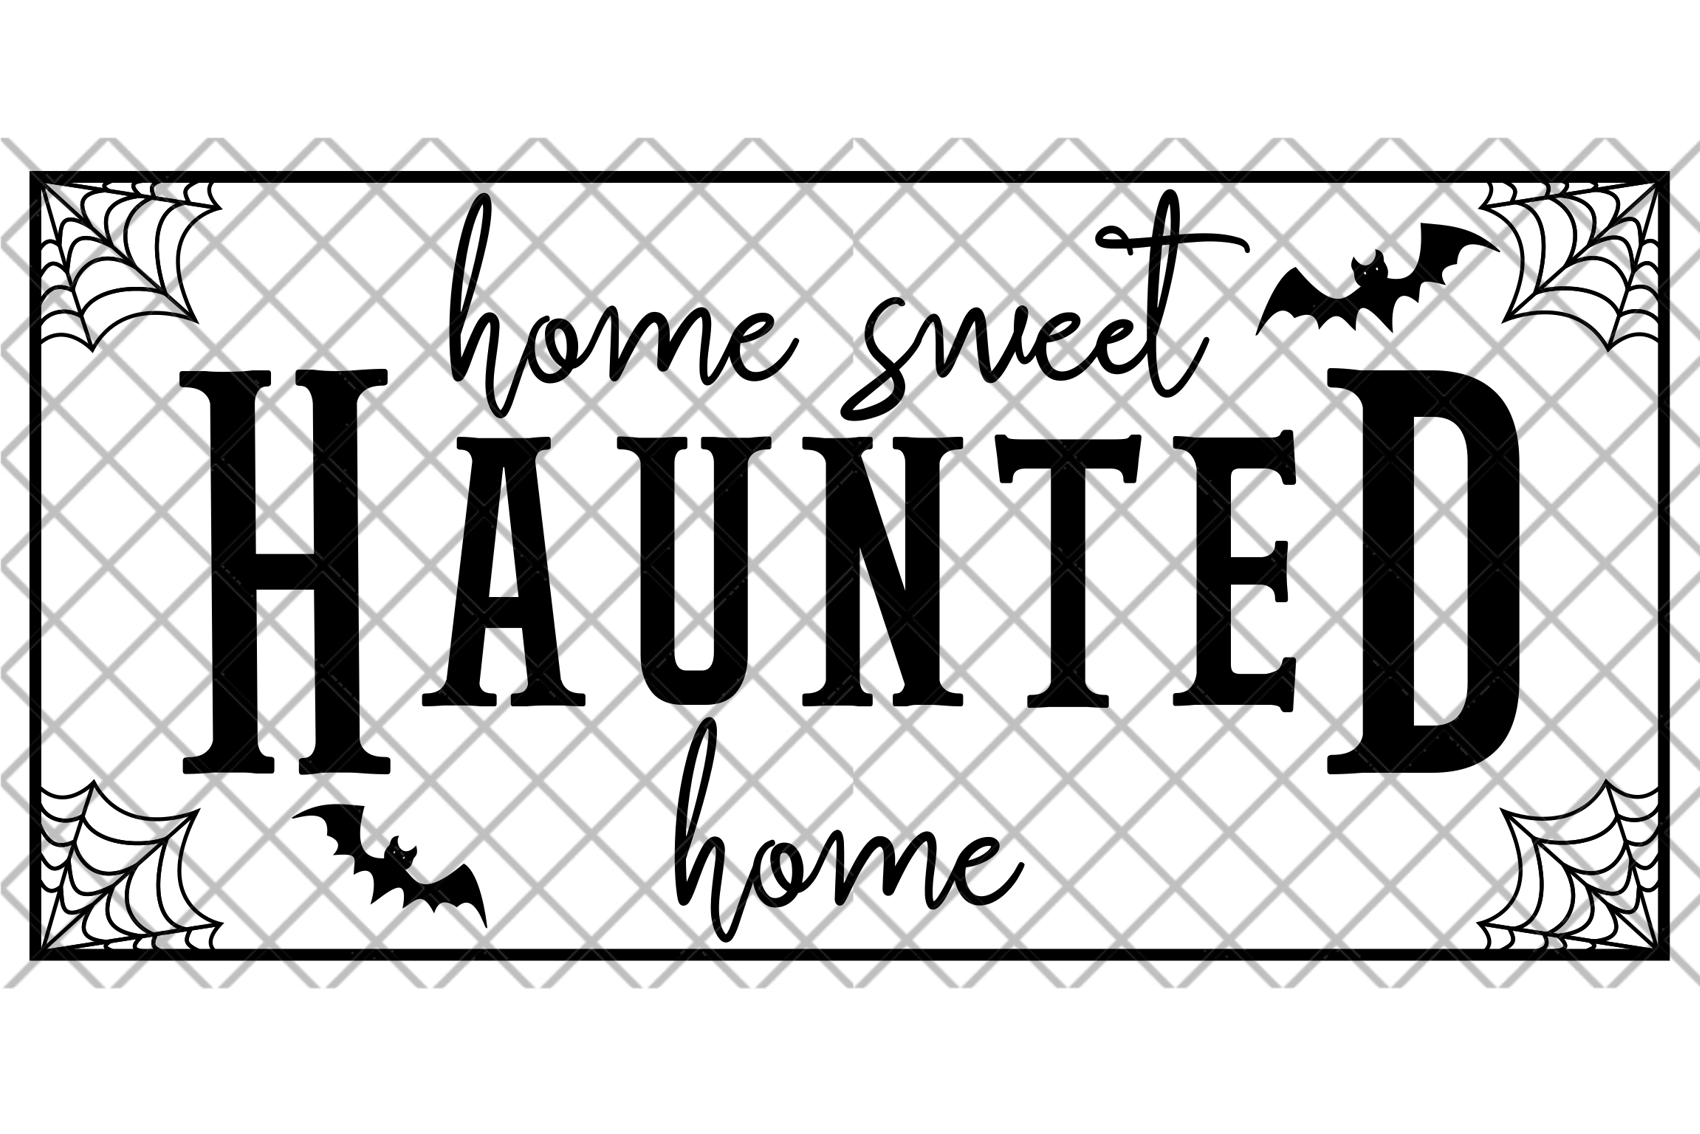 Home Sweet Haunted Home Halloween SVG Digital Cut File Sign example image 2